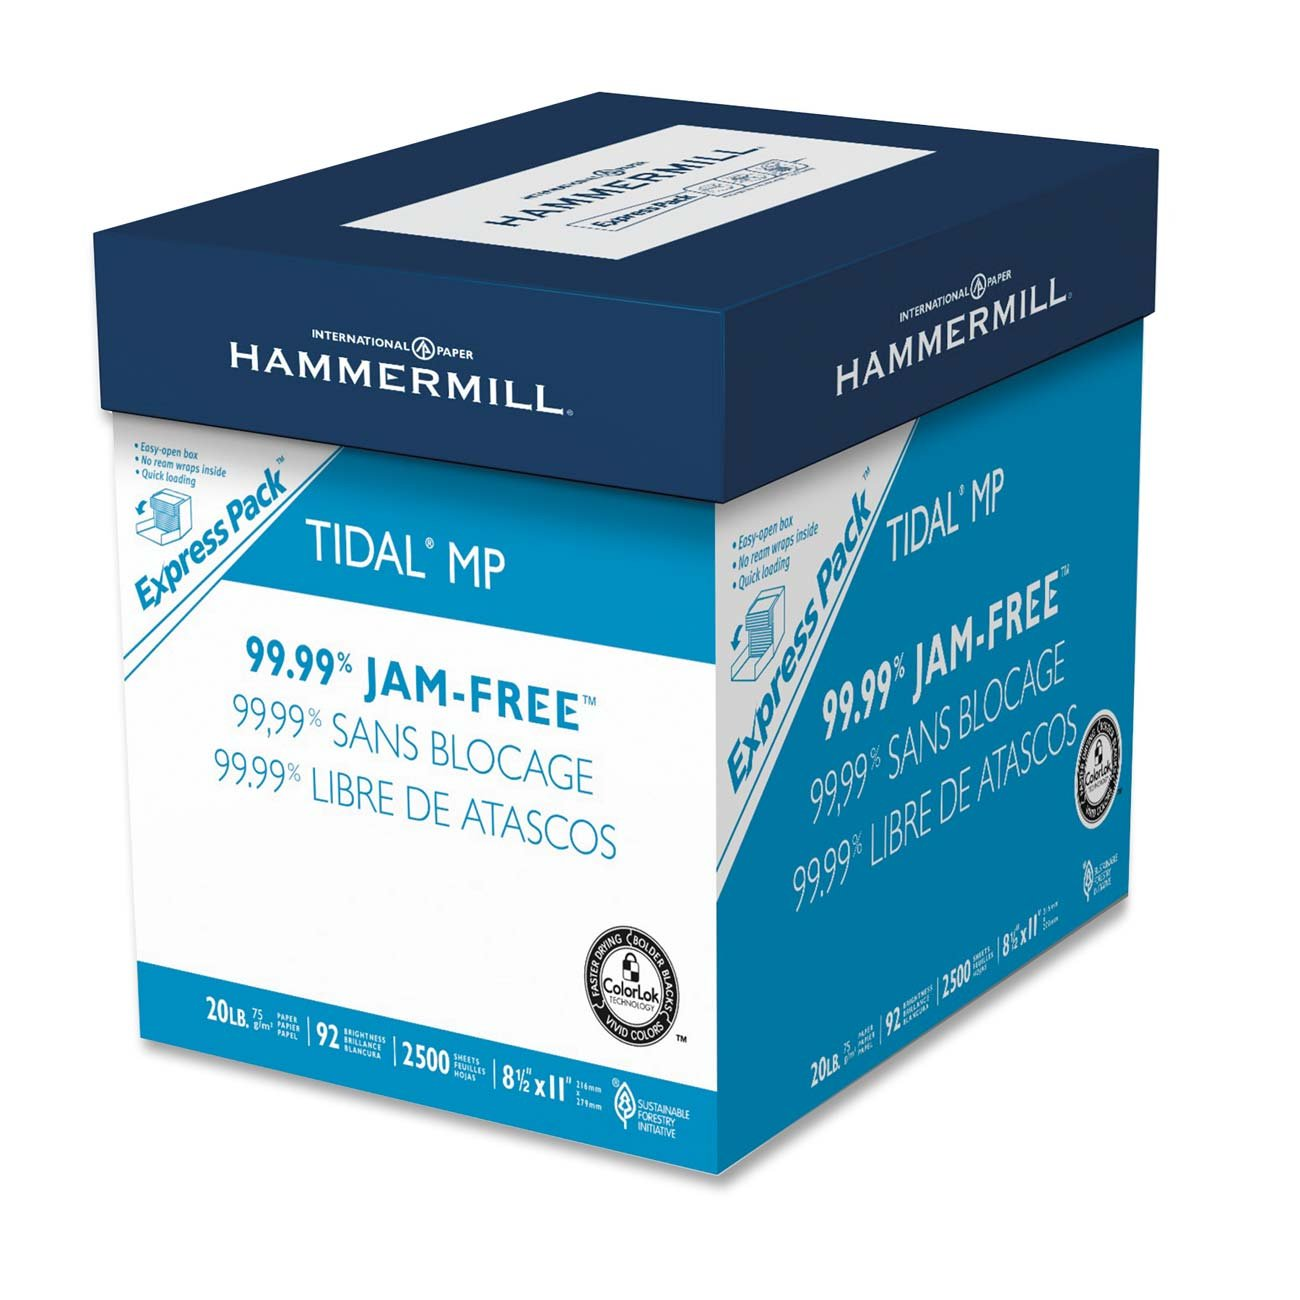 Hammermill Paper Tidal Mp 20Lb 8.5 X 11 92 Bright Letter 2500 Sheets/ Express.. 2